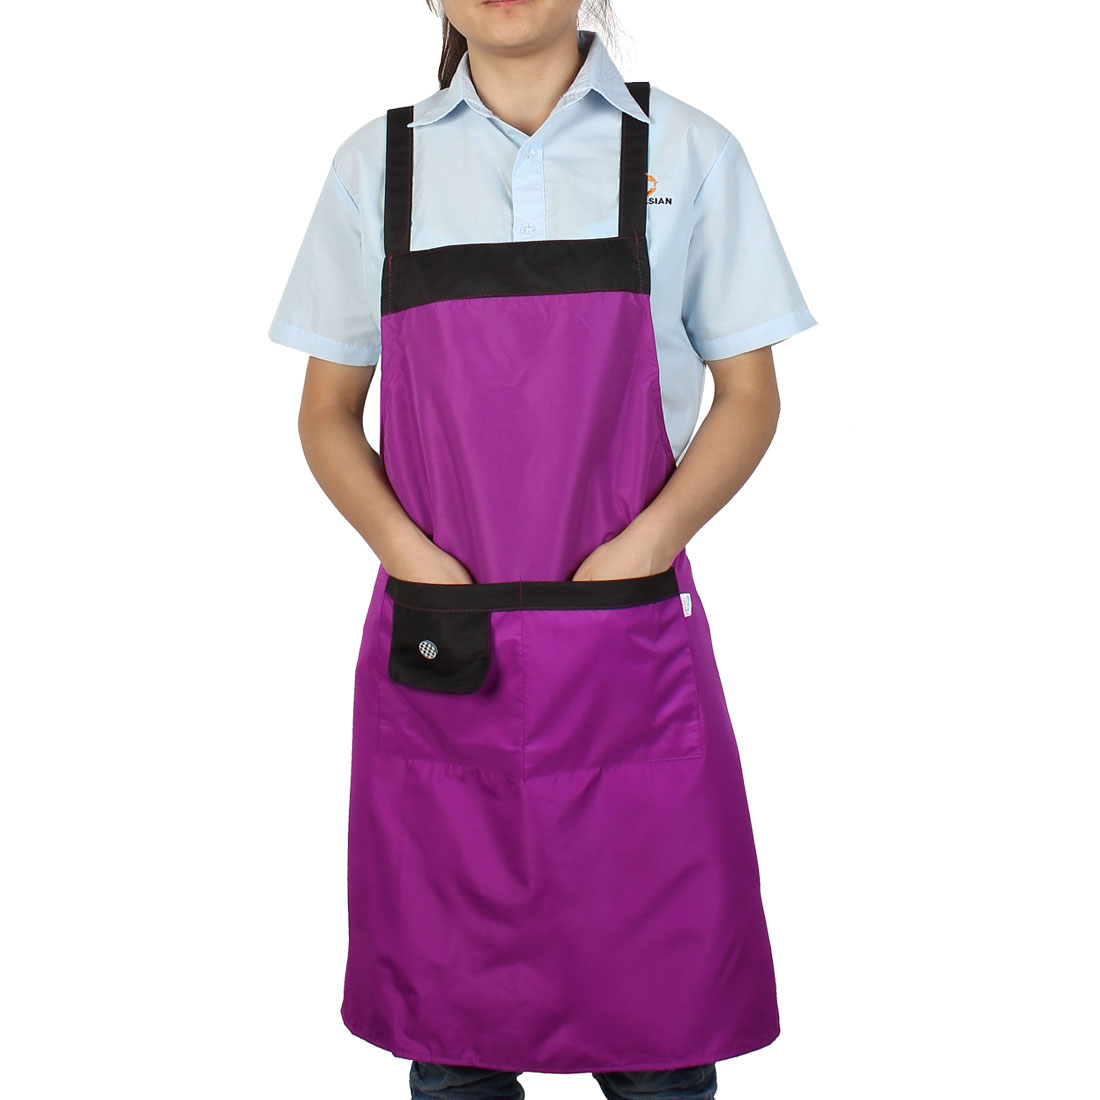 Kitchen Cook Cooking Self Tie Button Detail 2 Pocket Bib Apron Dress Brown